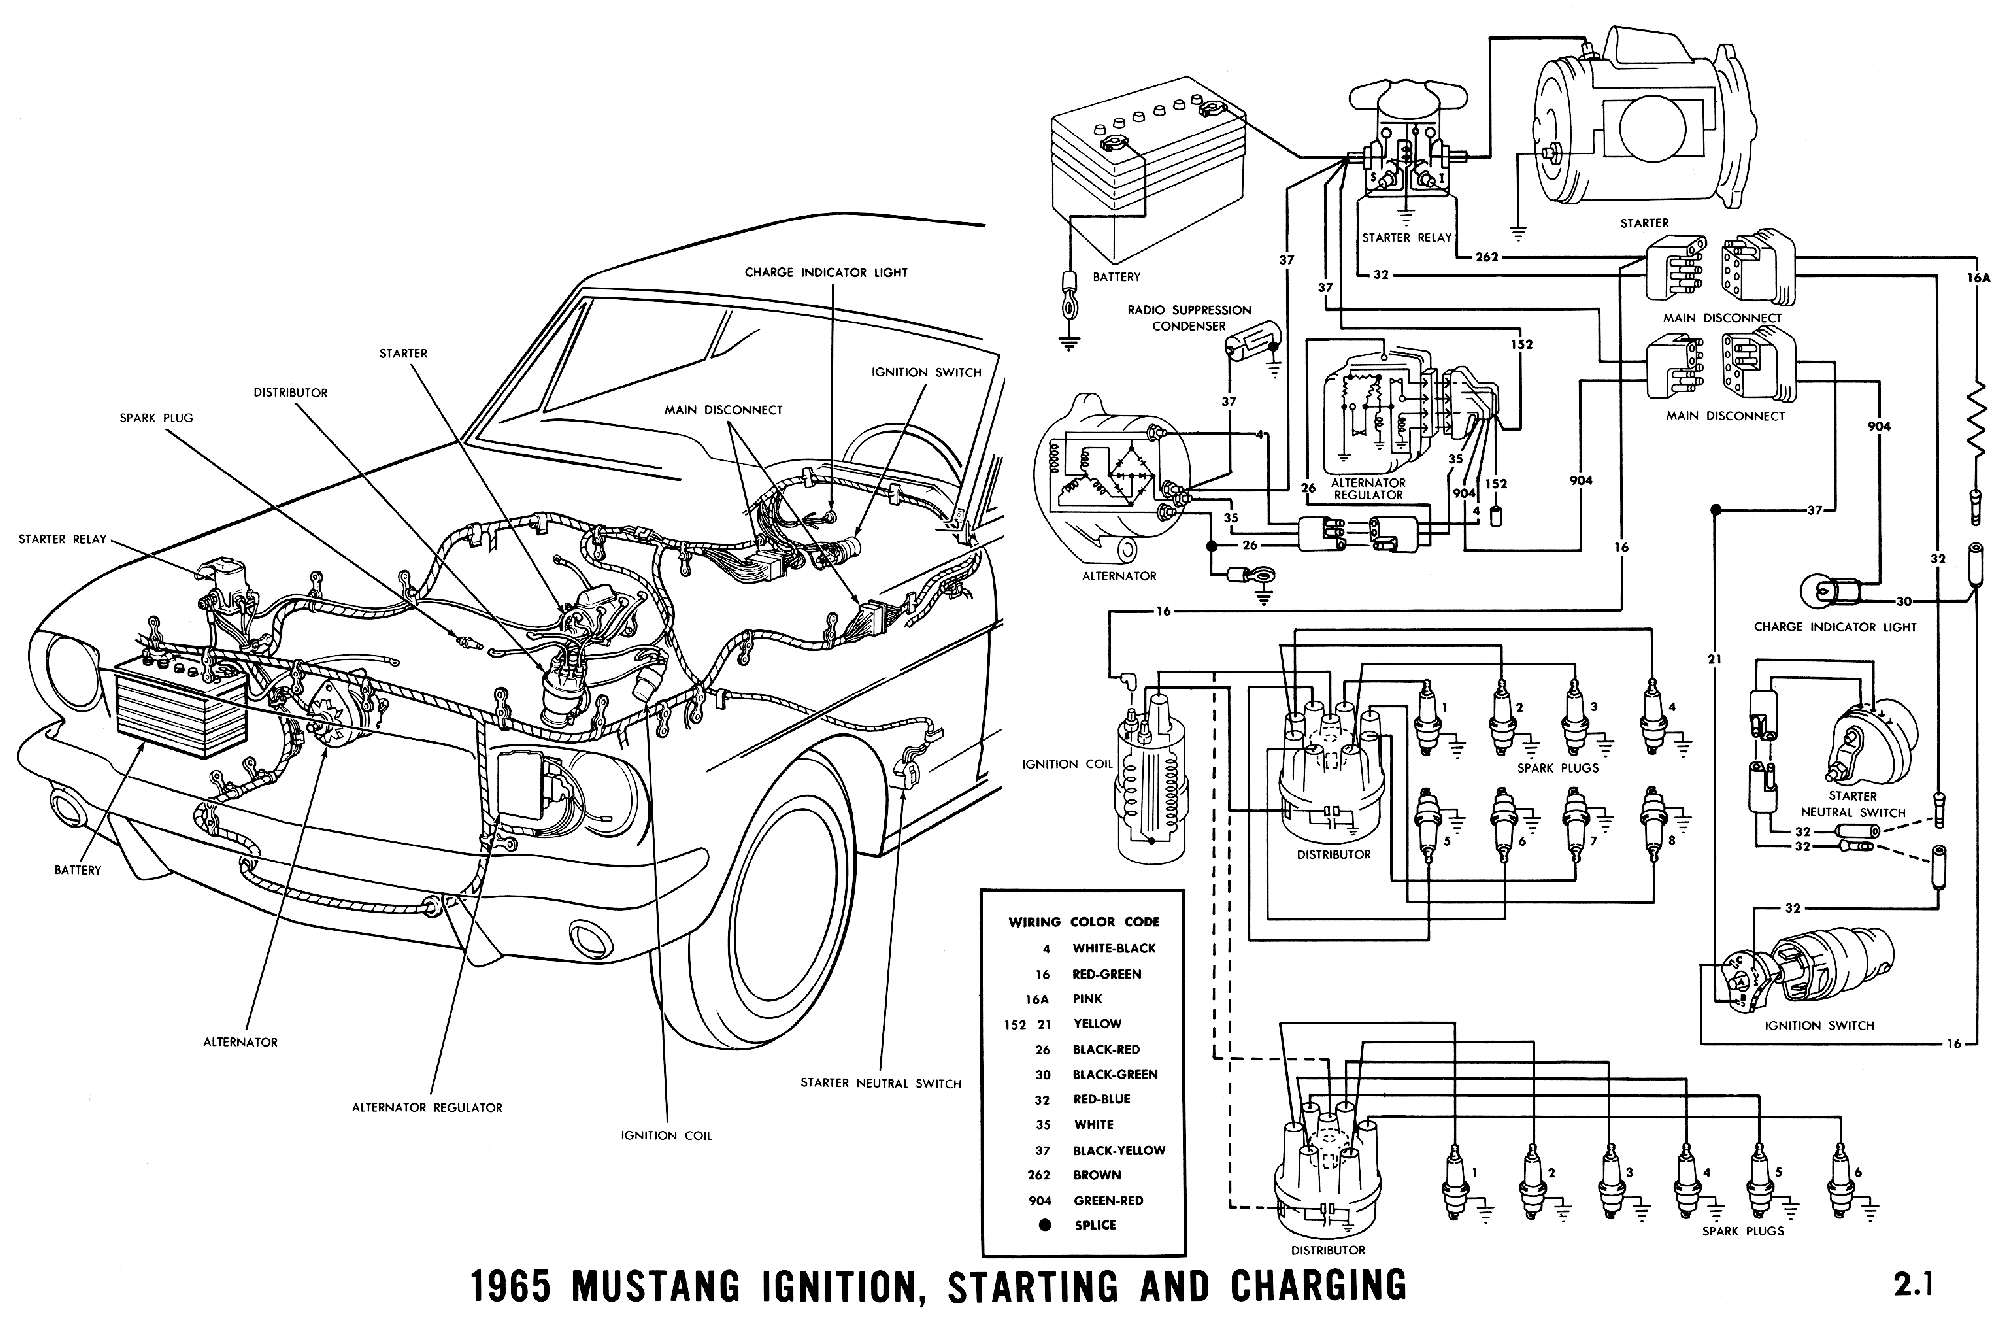 1997 Ford Mustang Radio Wiring Diagram from averagejoerestoration.com